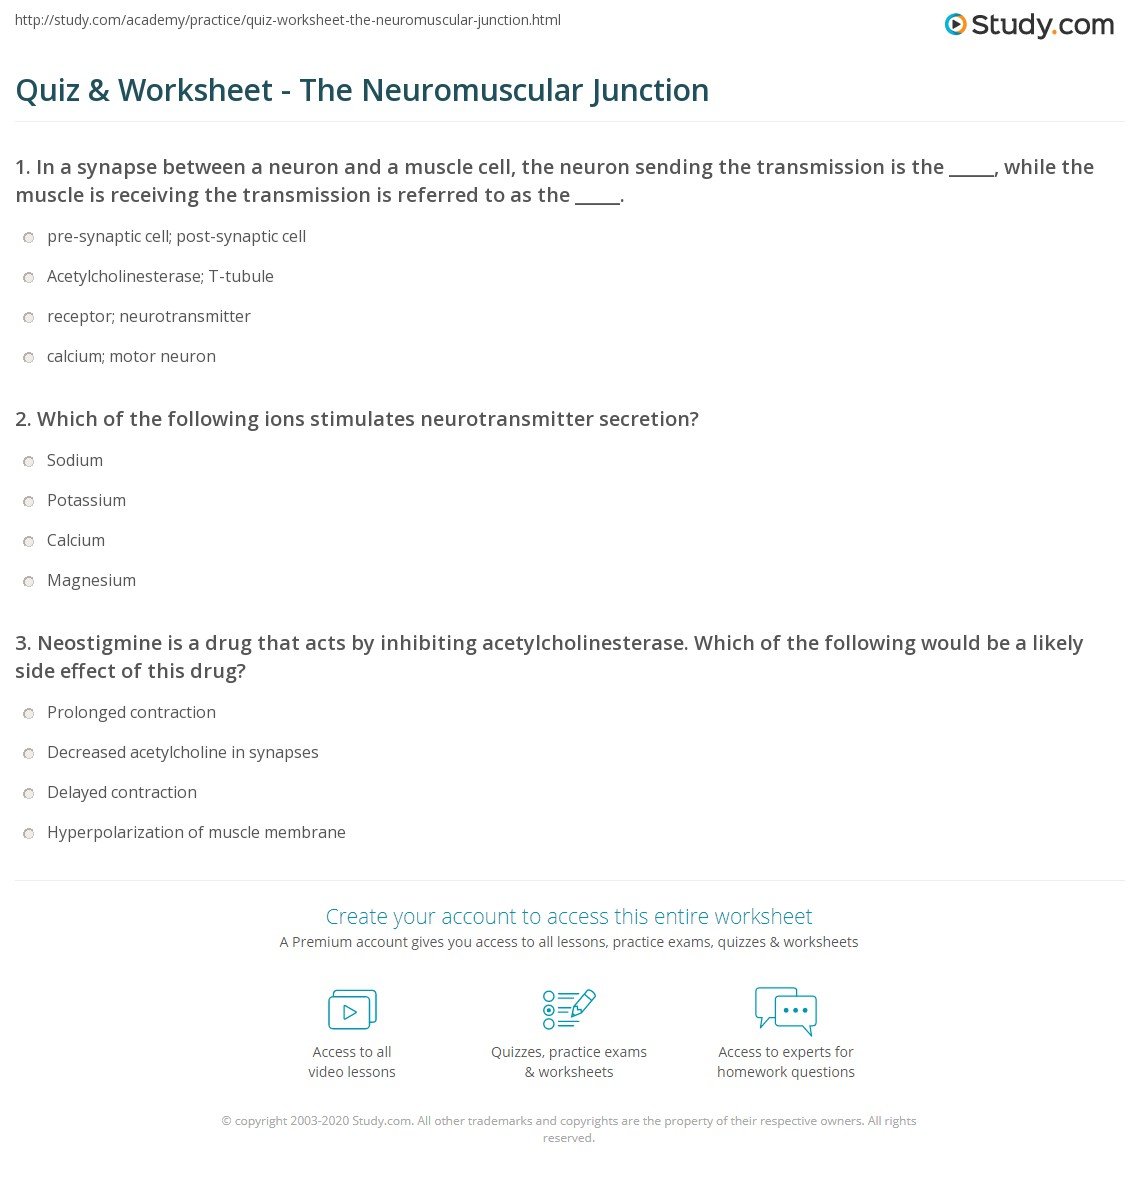 Quiz Worksheet The Neuromuscular Junction – Neuron and Neuromuscular Junction Worksheet